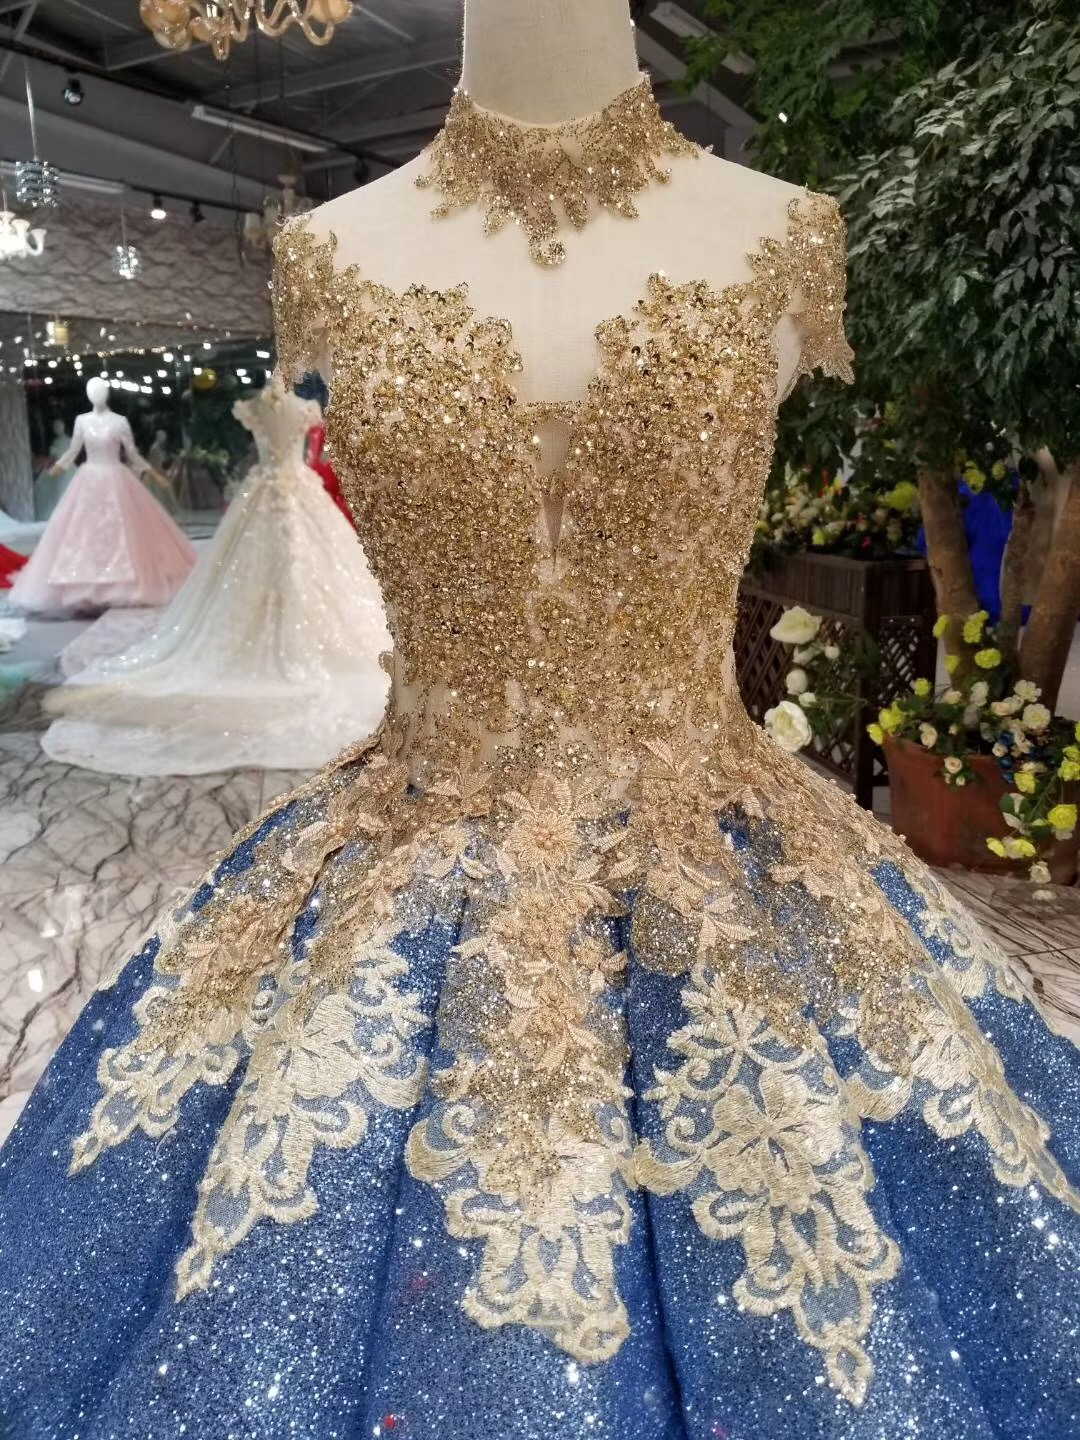 2019 New Style Glitter Ball Gown Lebanon Crystals Lace Prom Dresses Arabic  Puffy Party Dress Dubai Evening Dress Robe De Soiree-in Prom Dresses from  ... 4143ef48728d